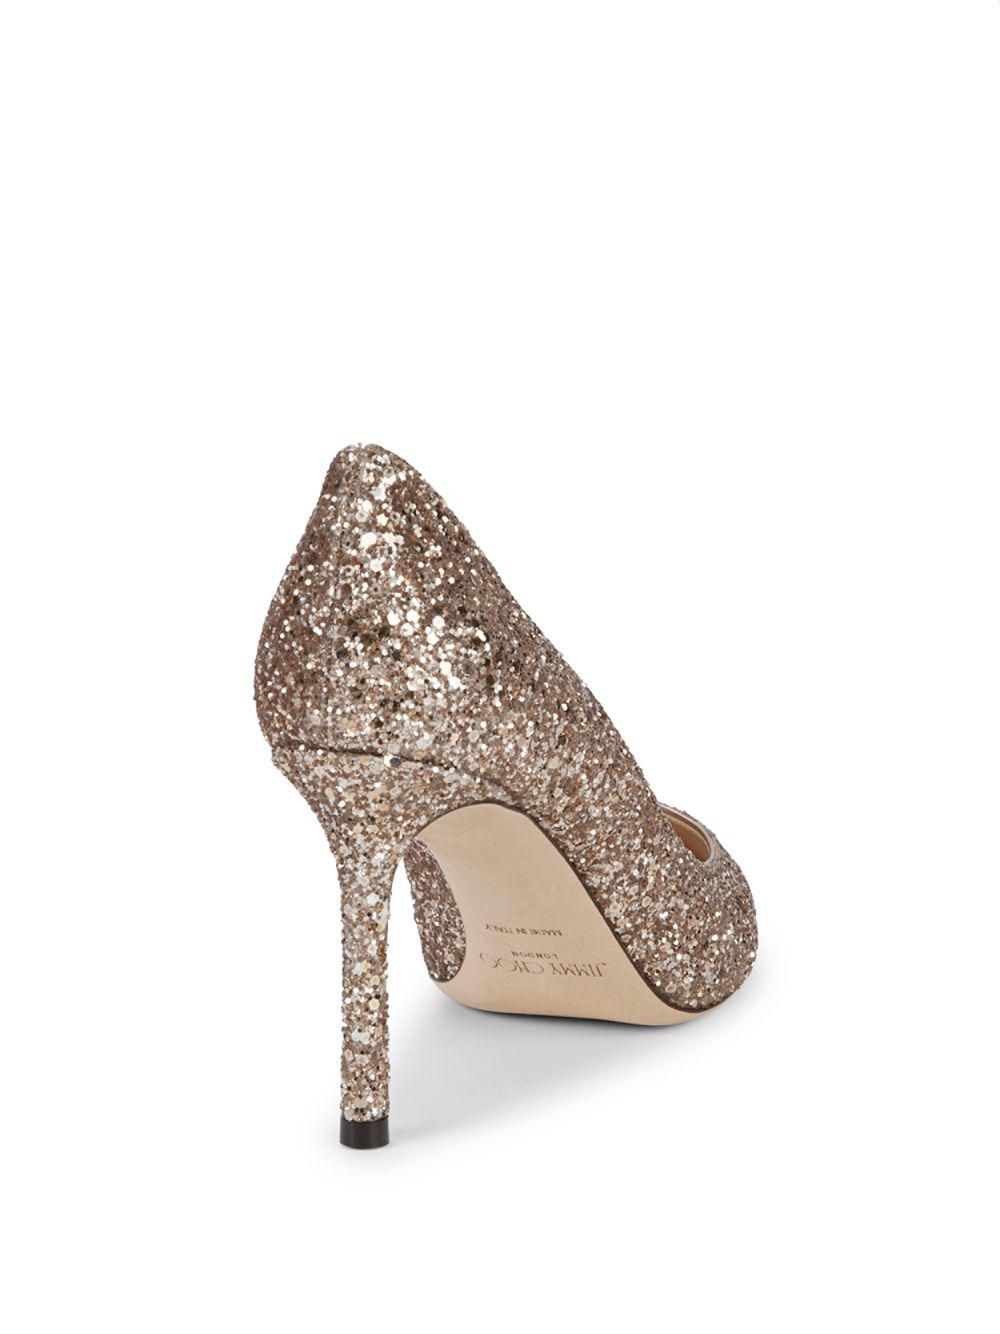 e67bccfb7618 Lyst - Jimmy Choo Romy Coarse Glitter Pumps 85 in Pink - Save  34.35114503816794%